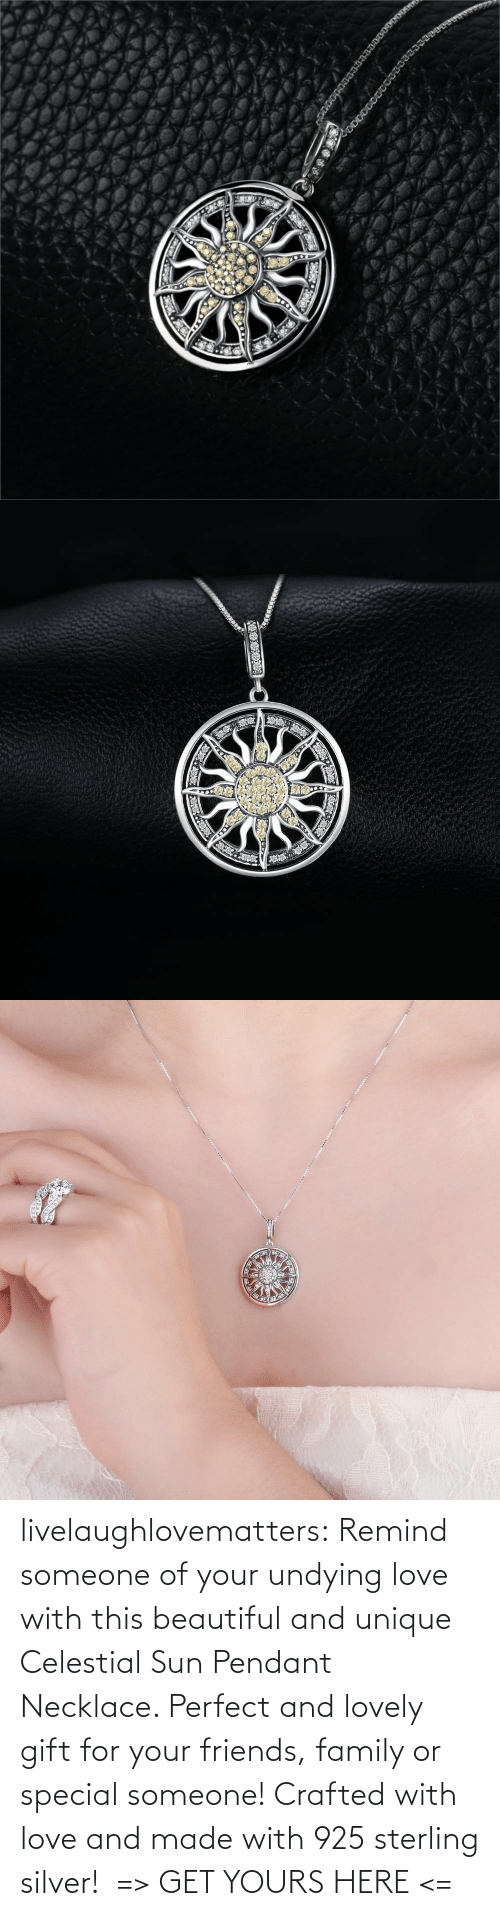 celestial: livelaughlovematters: Remind someone of your undying love with this beautiful and unique Celestial Sun Pendant Necklace. Perfect and lovely gift for your friends, family or special someone! Crafted with love and made with 925 sterling silver! => GET YOURS HERE <=